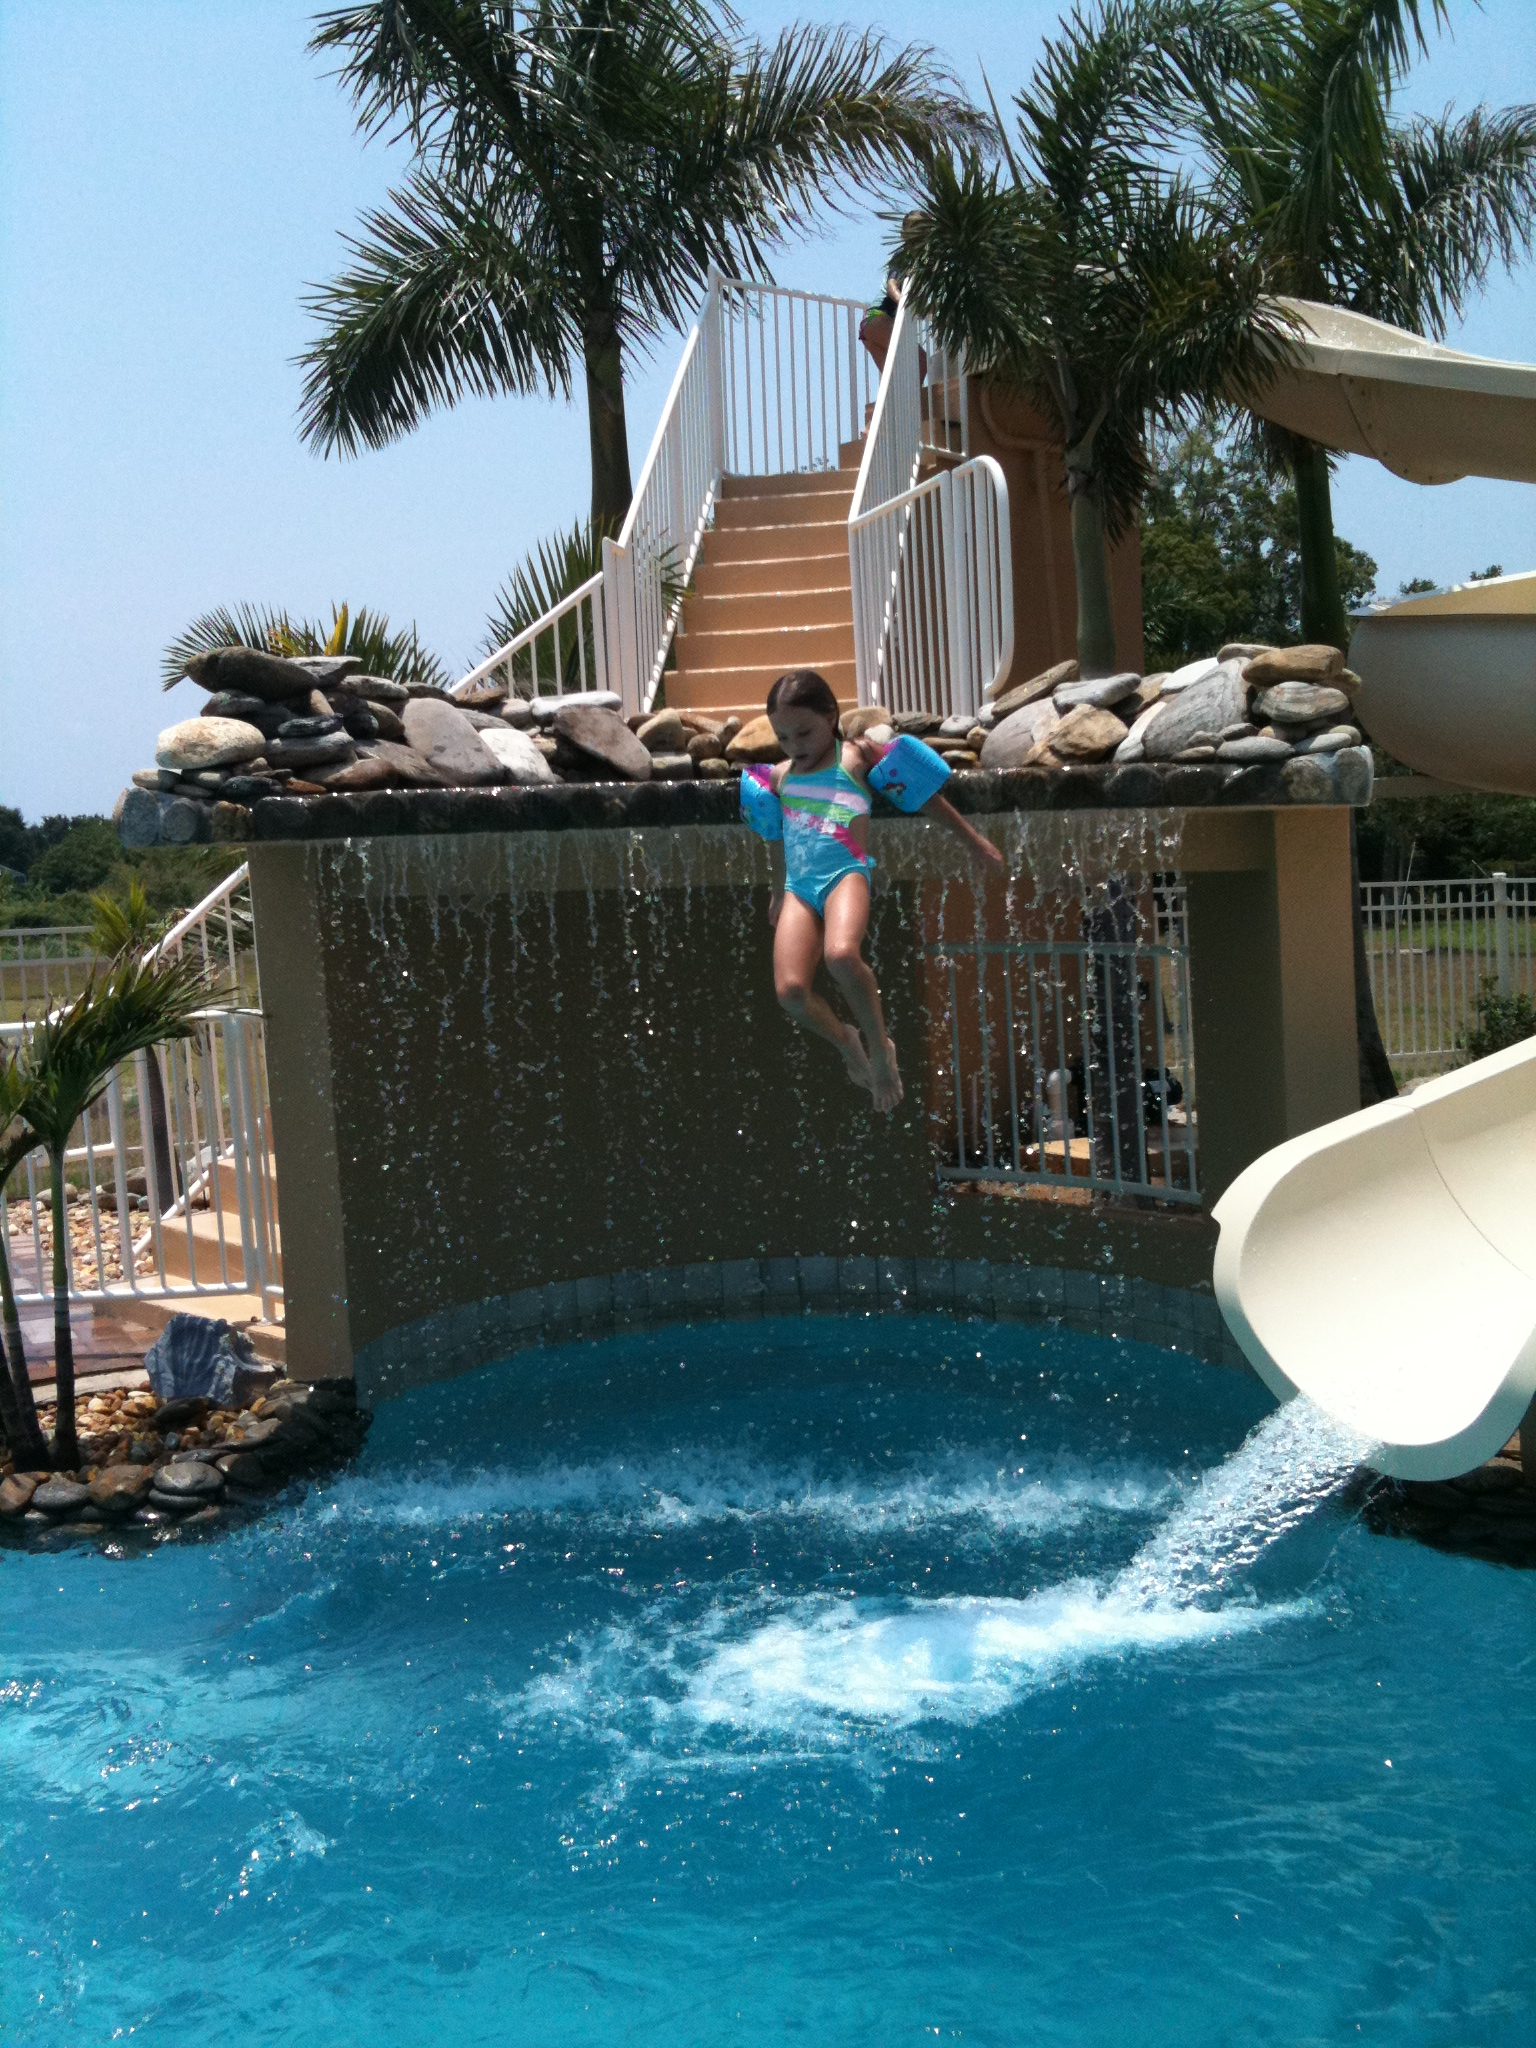 Space coast pool homes brevard county pool homes for Houses for sale pool